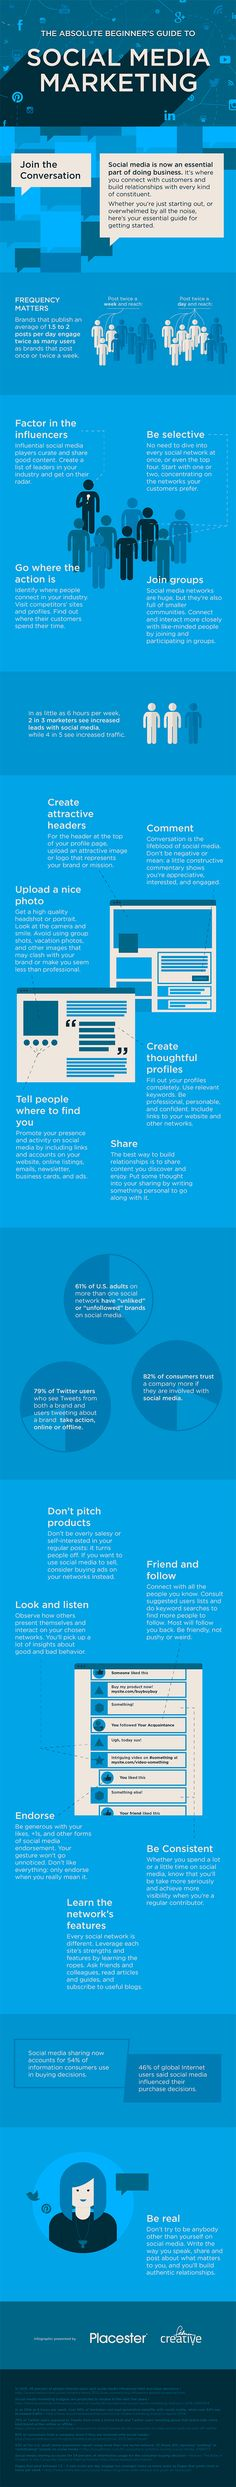 #Social #Infographic: The Absolute Beginners Guide to Social Media Marketing